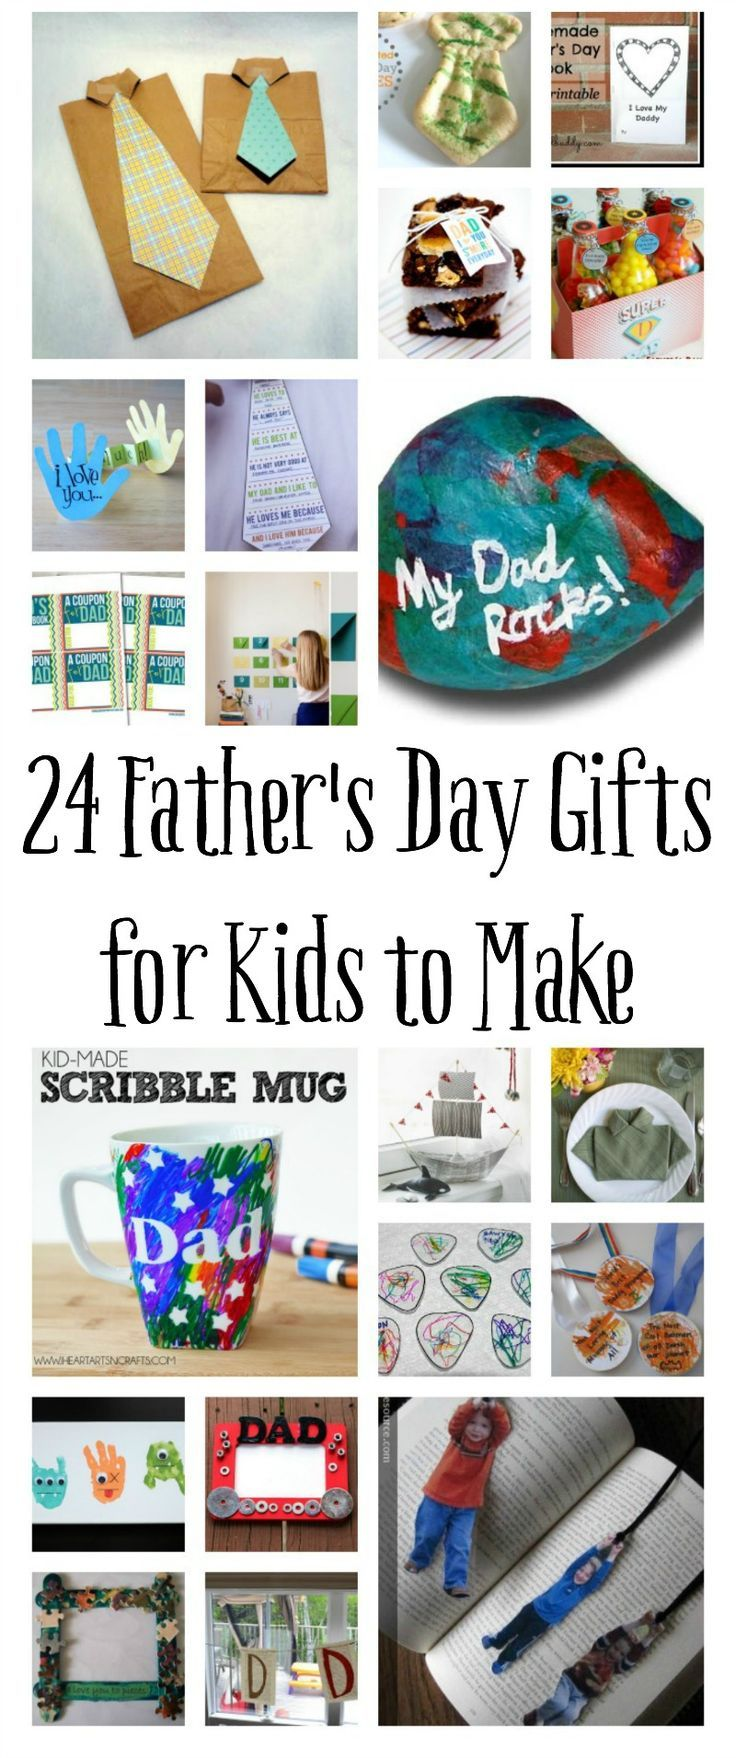 Homemade Father's Day Gifts for Kids to Make